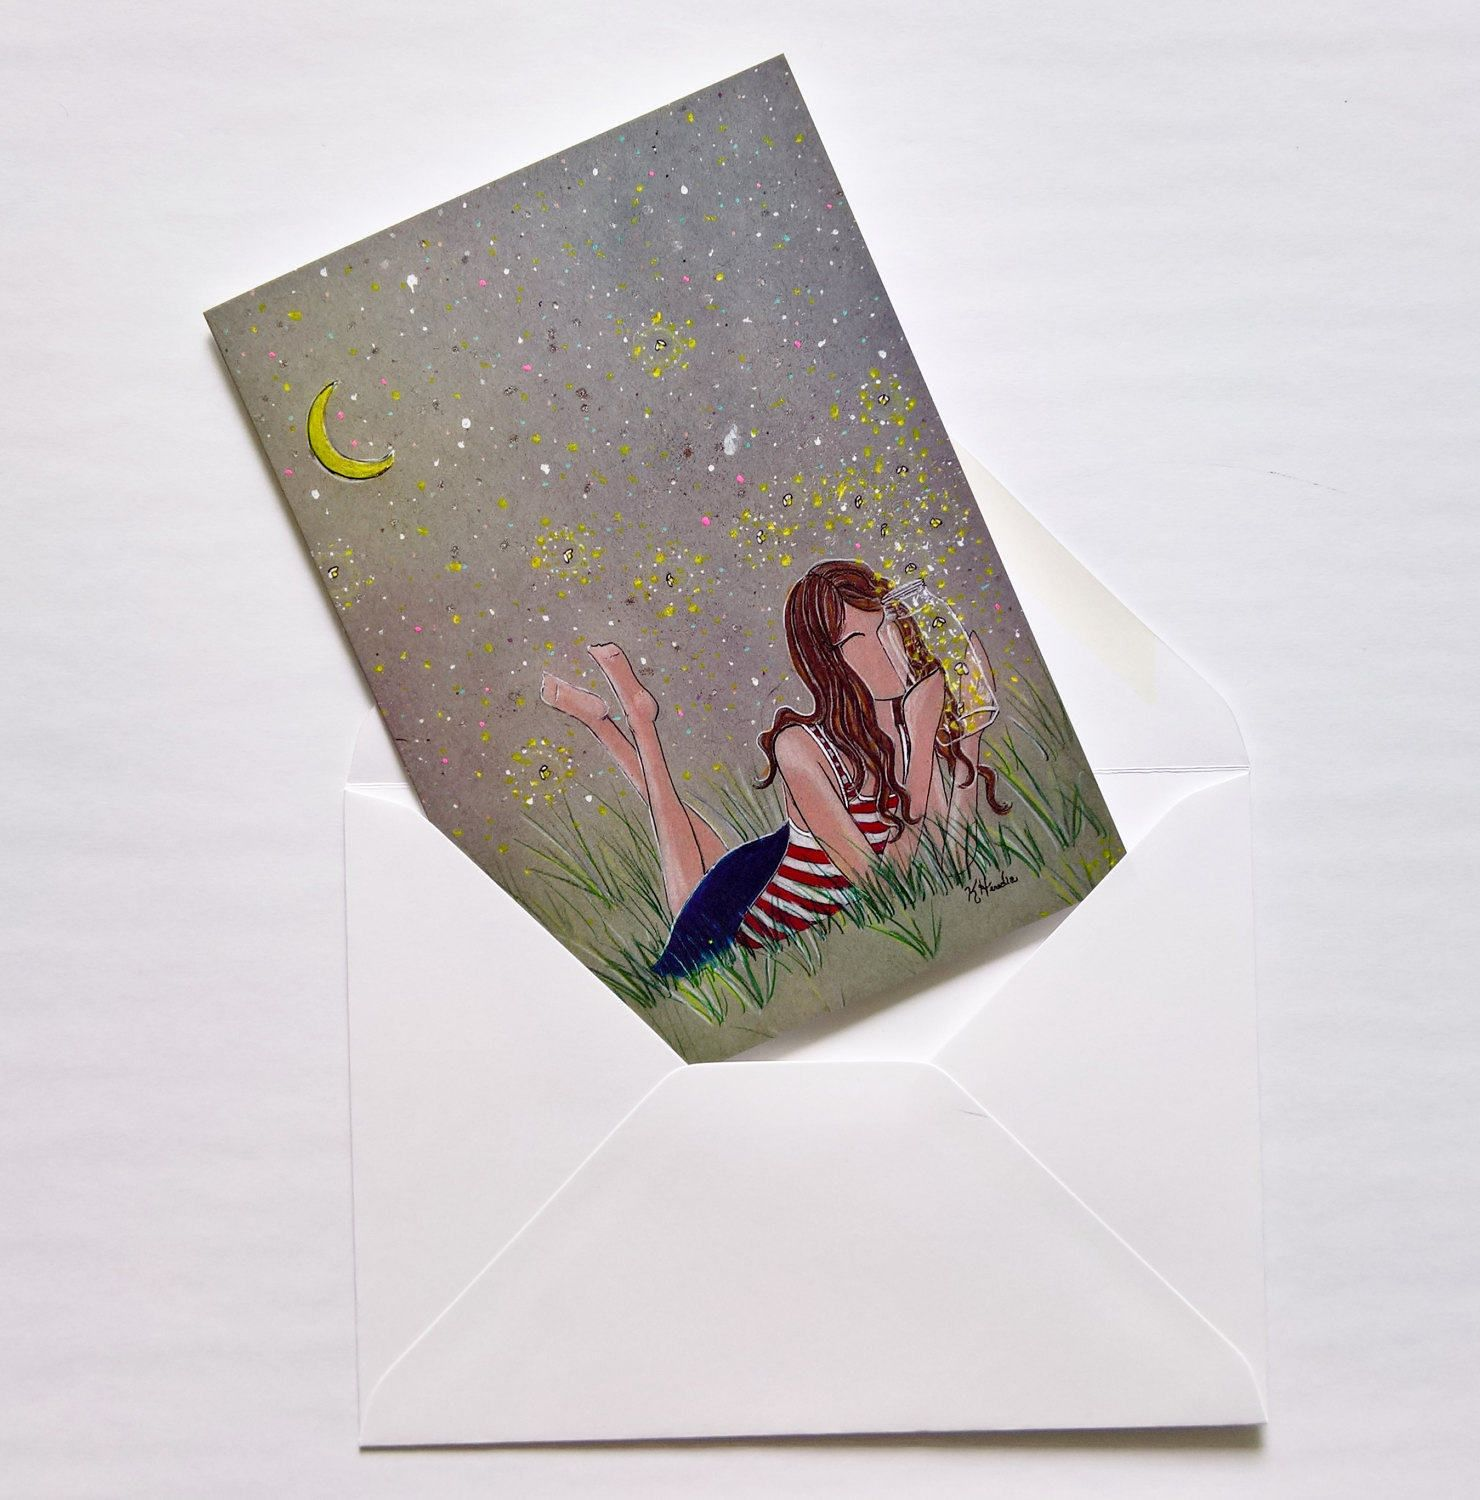 Incandescently   Note Cards   Gifts For Her     Individual   Fireflies    Dream   Summer NIghts   She Believed   Encouragement   Stars By  KristinaHerediaArt ...